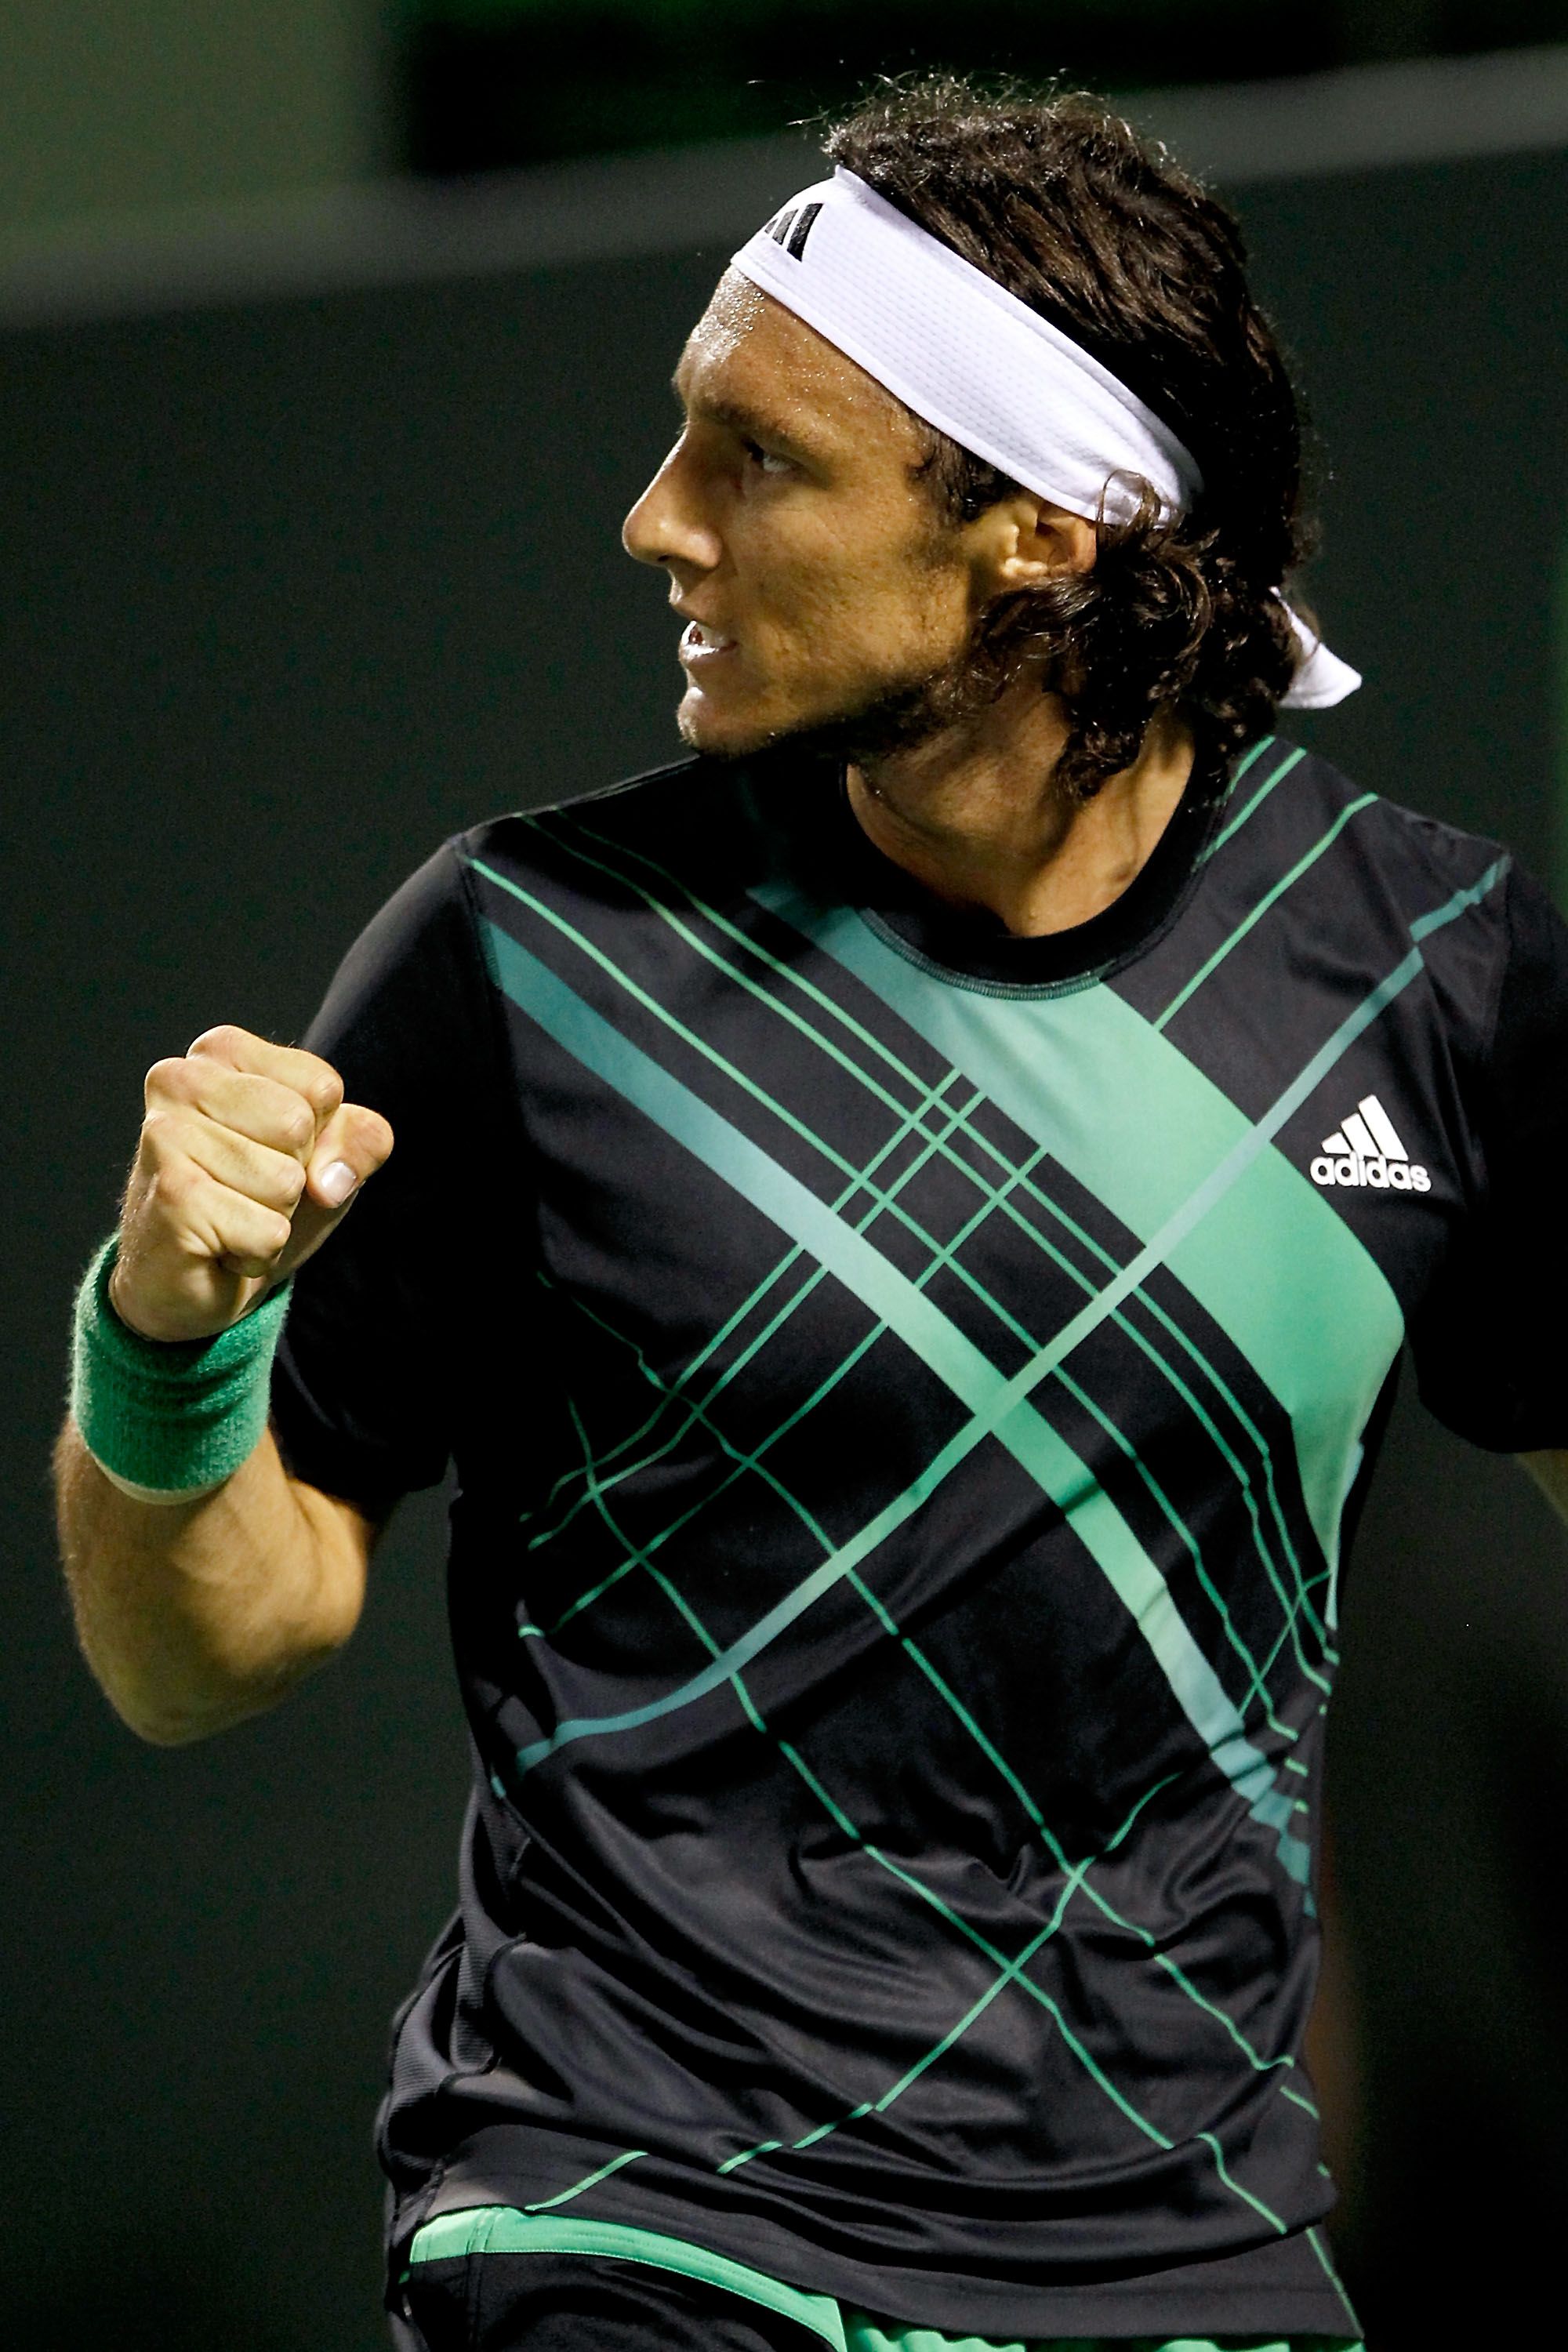 KEY BISCAYNE, FL - MARCH 29:  Juan Monaco of Argentina celebrates breaking Fernando Gonzalez of Chile in the first set during day seven of the 2010 Sony Ericsson Open at Crandon Park Tennis Center on March 29, 2010 in Key Biscayne, Florida.  (Photo by Mat